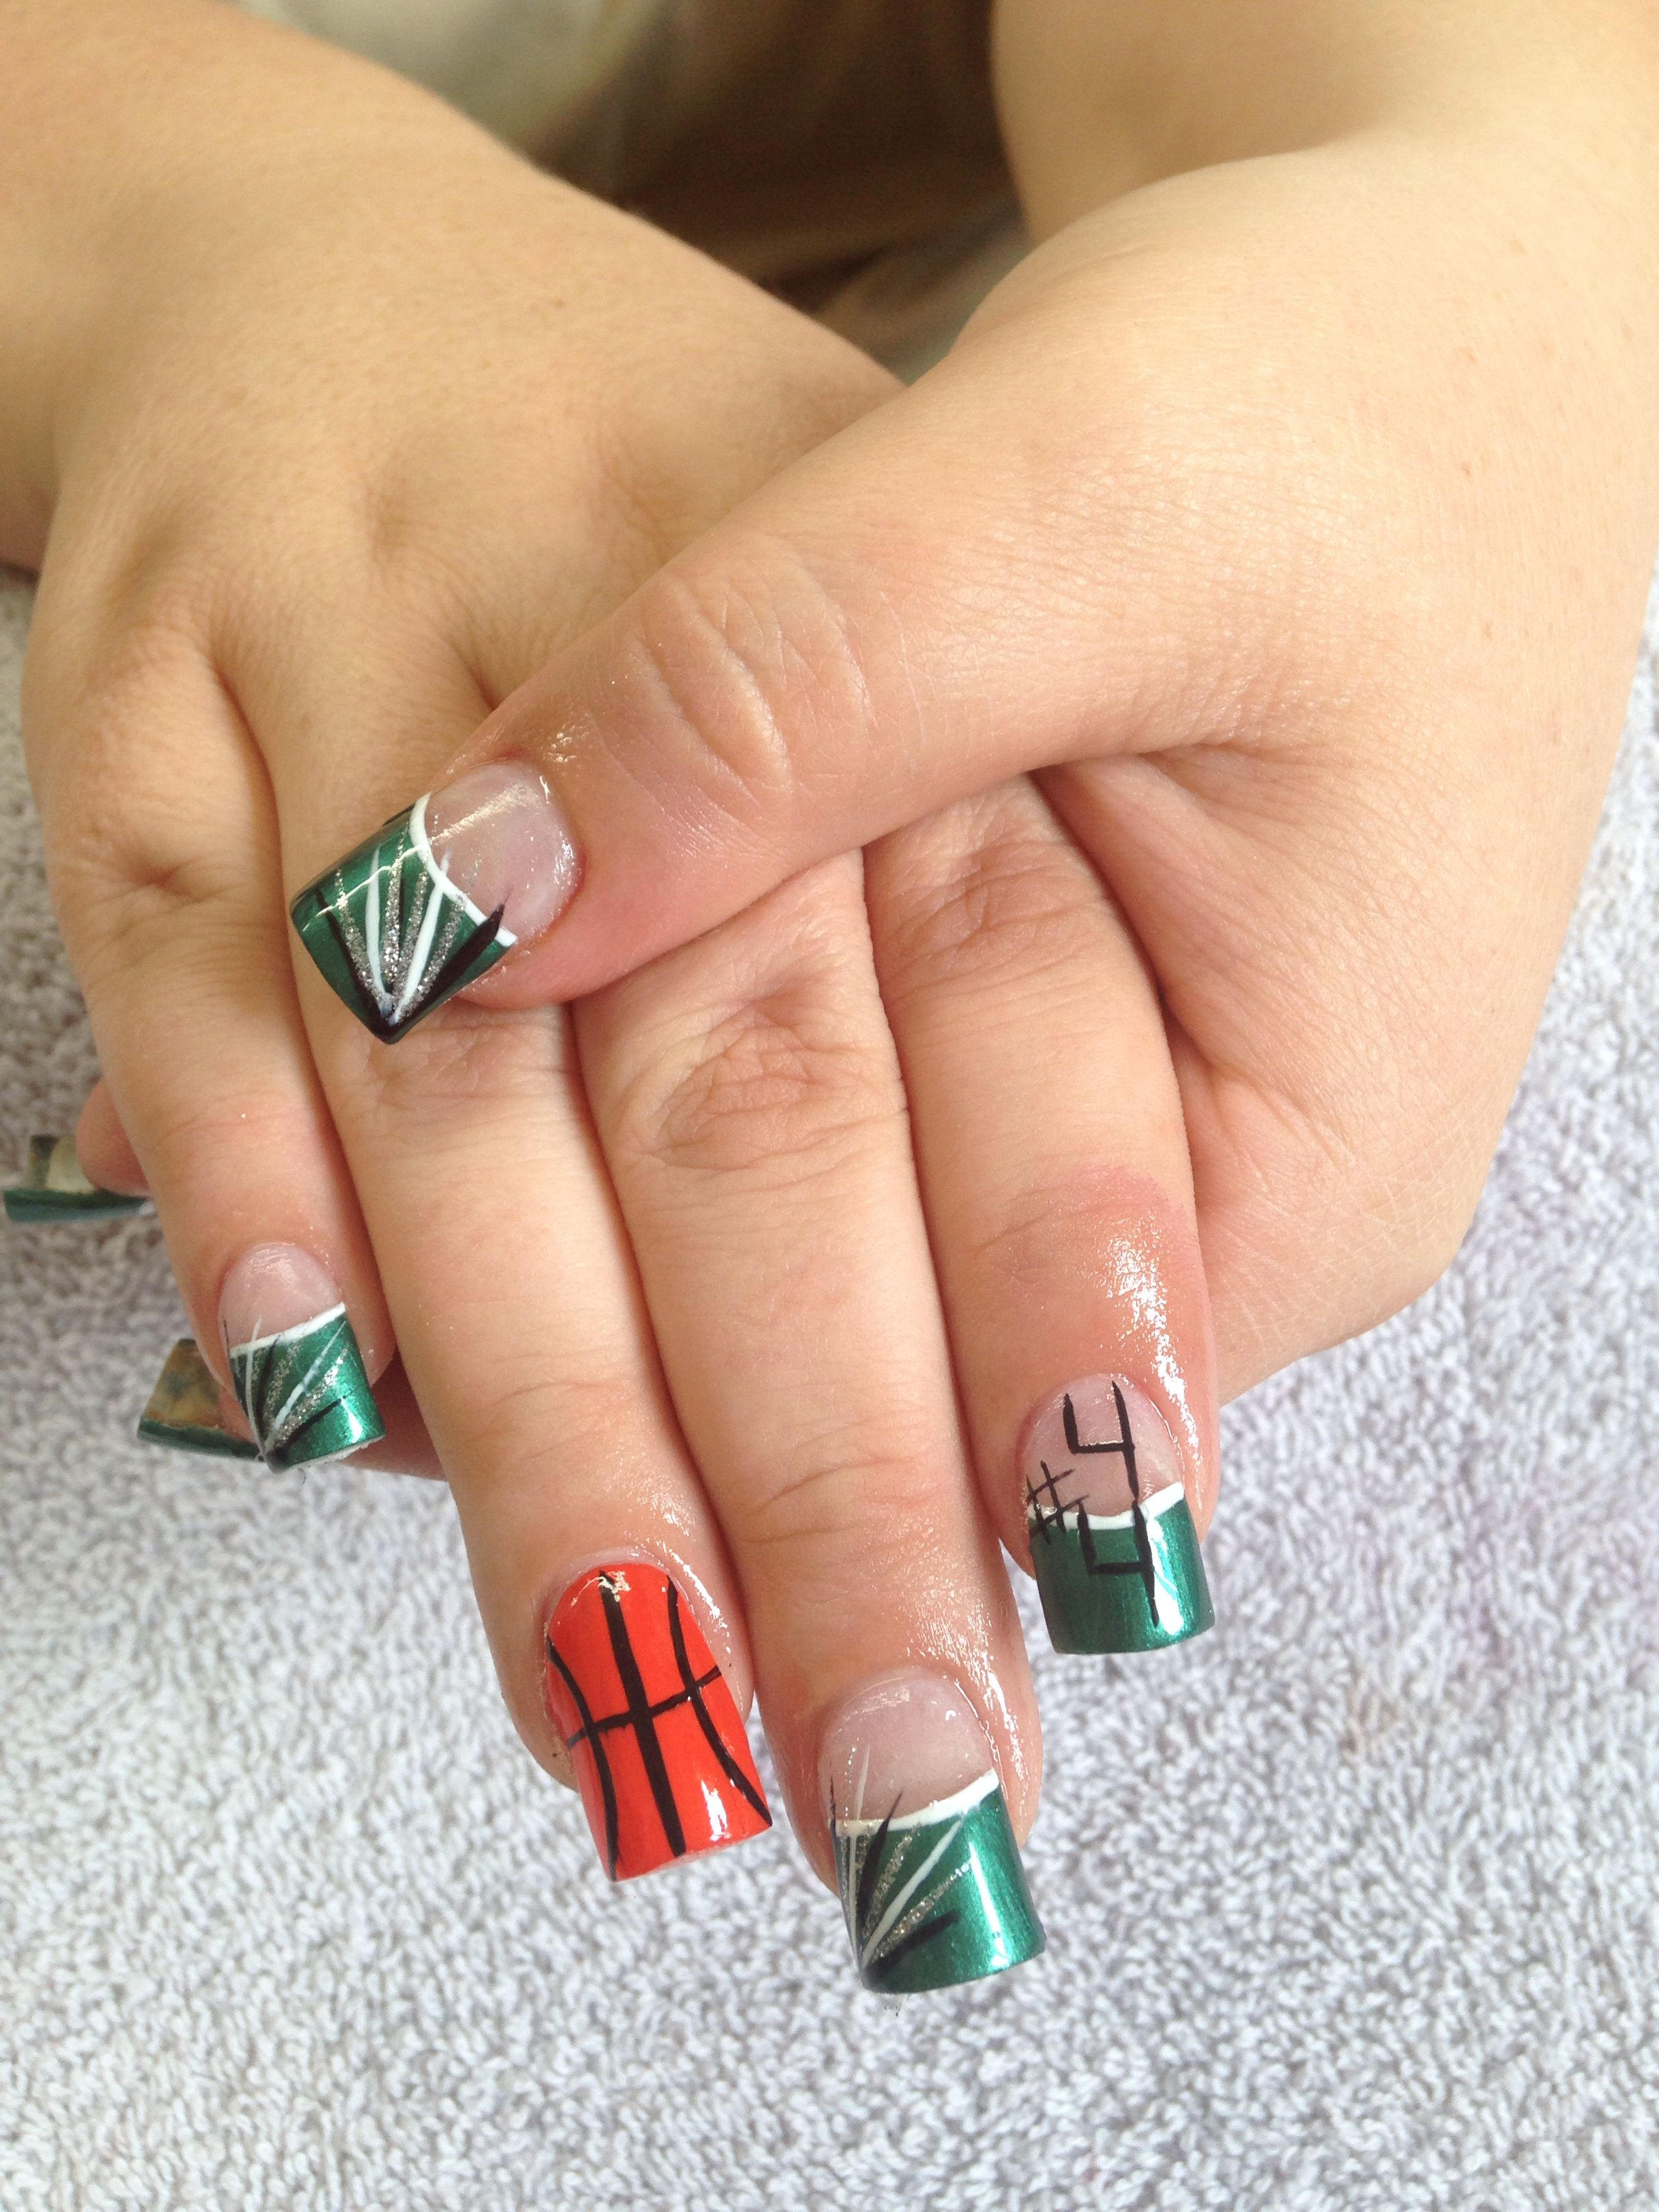 Pin By Emilee On Em S Nail Creations Basketball Nails Basketball Nail Designs Get Nails